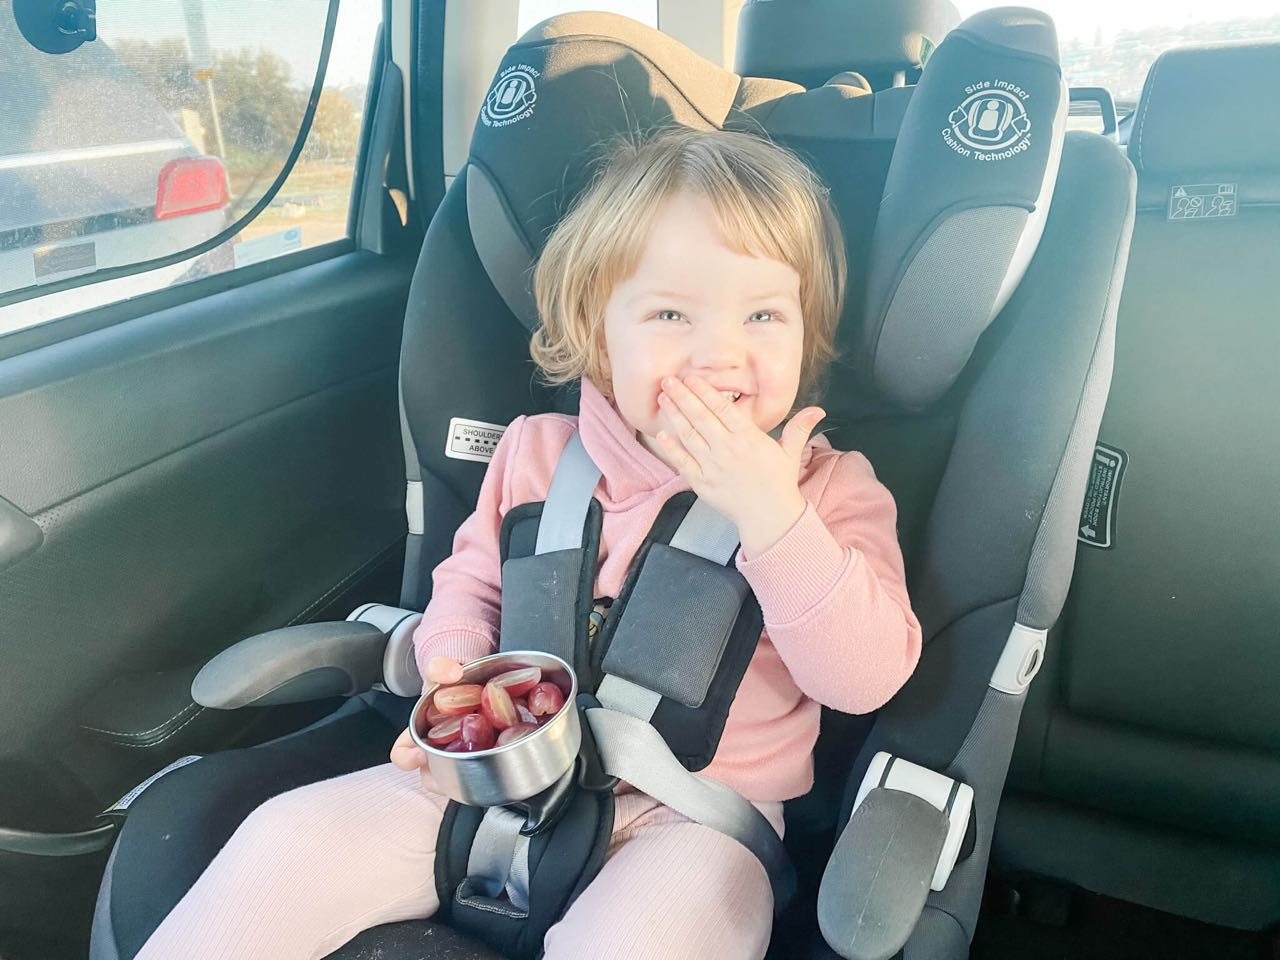 little girl in a pink tracksuit eating grapes while sitting in her car seat in the back of a car